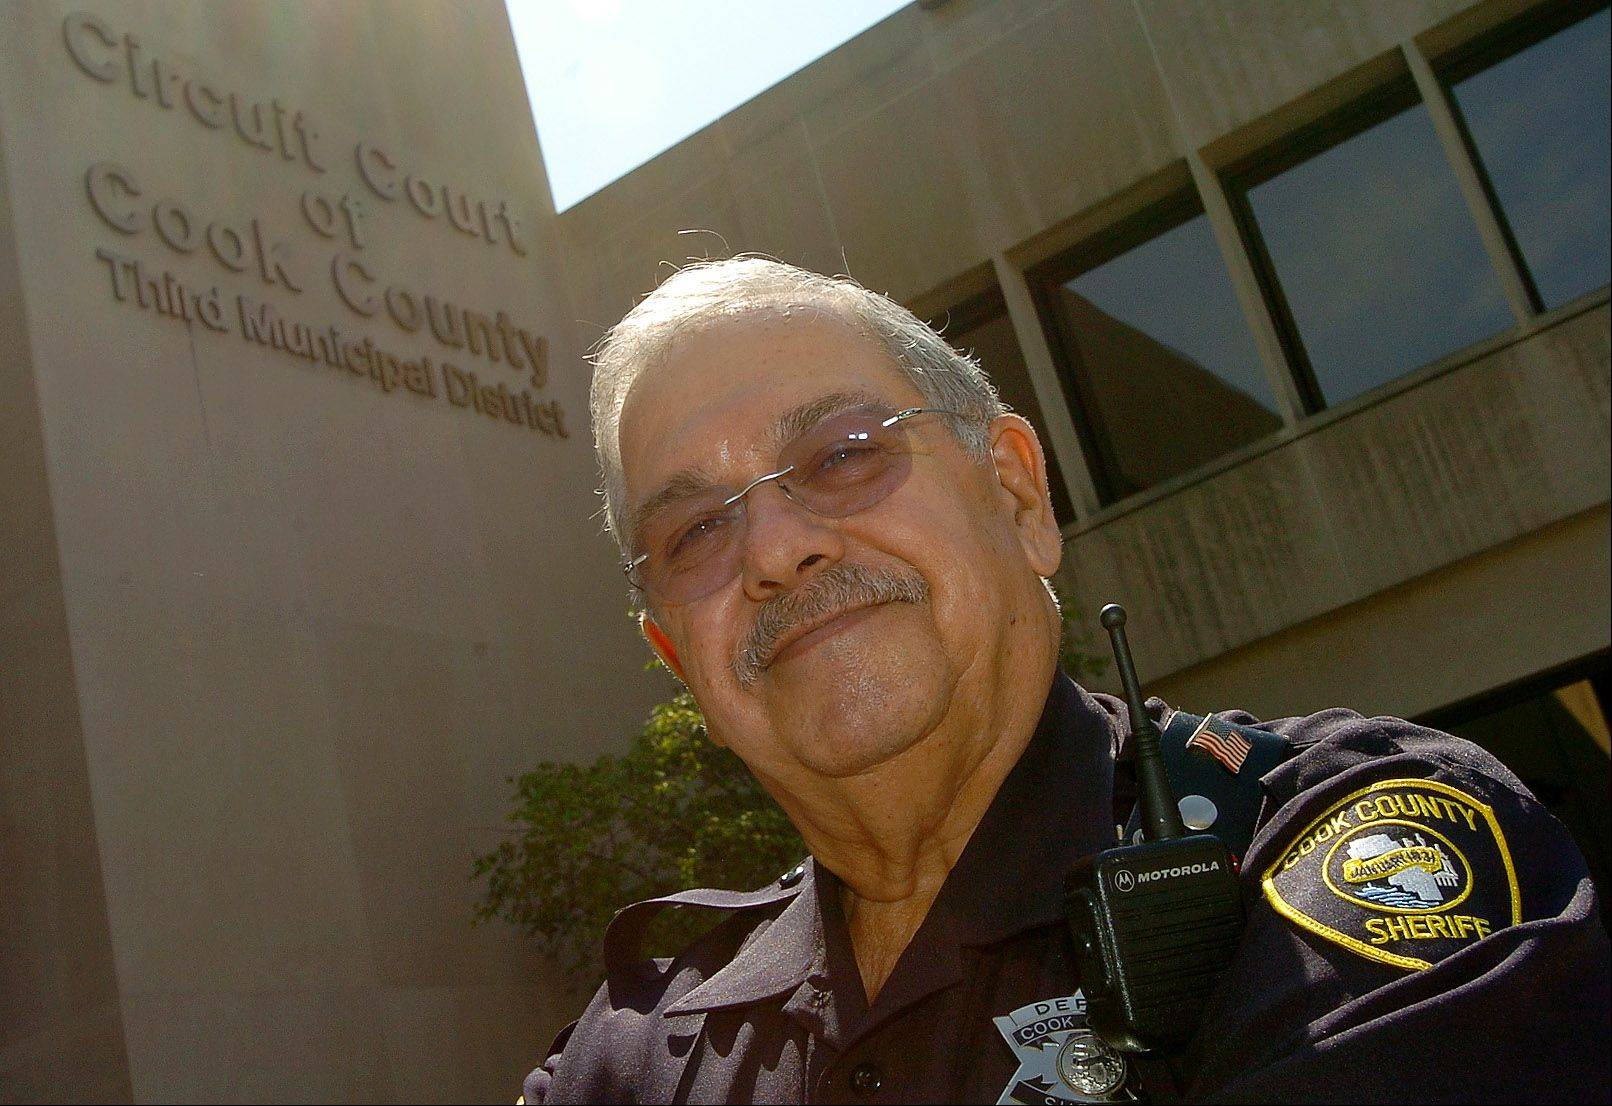 Arlington Heights resident and newly retired Cook County Sheriff's Deputy Stan Schultz plans to spend his second retirement fishing and working on projects around the house.